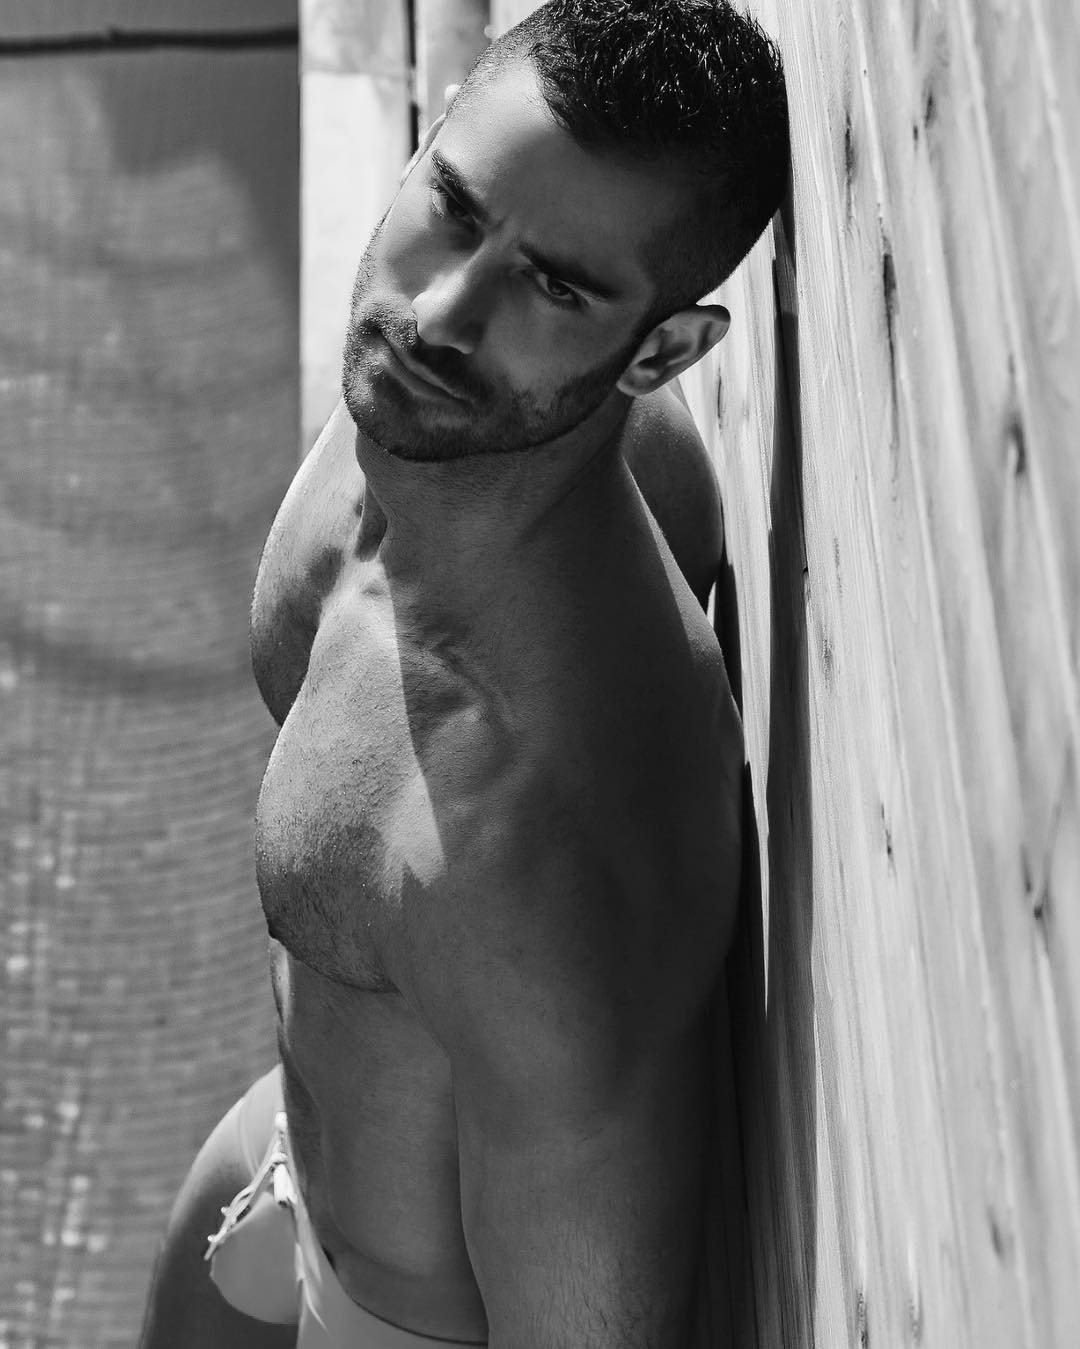 Jonathan Guijarro by Joan Crisol for Code22